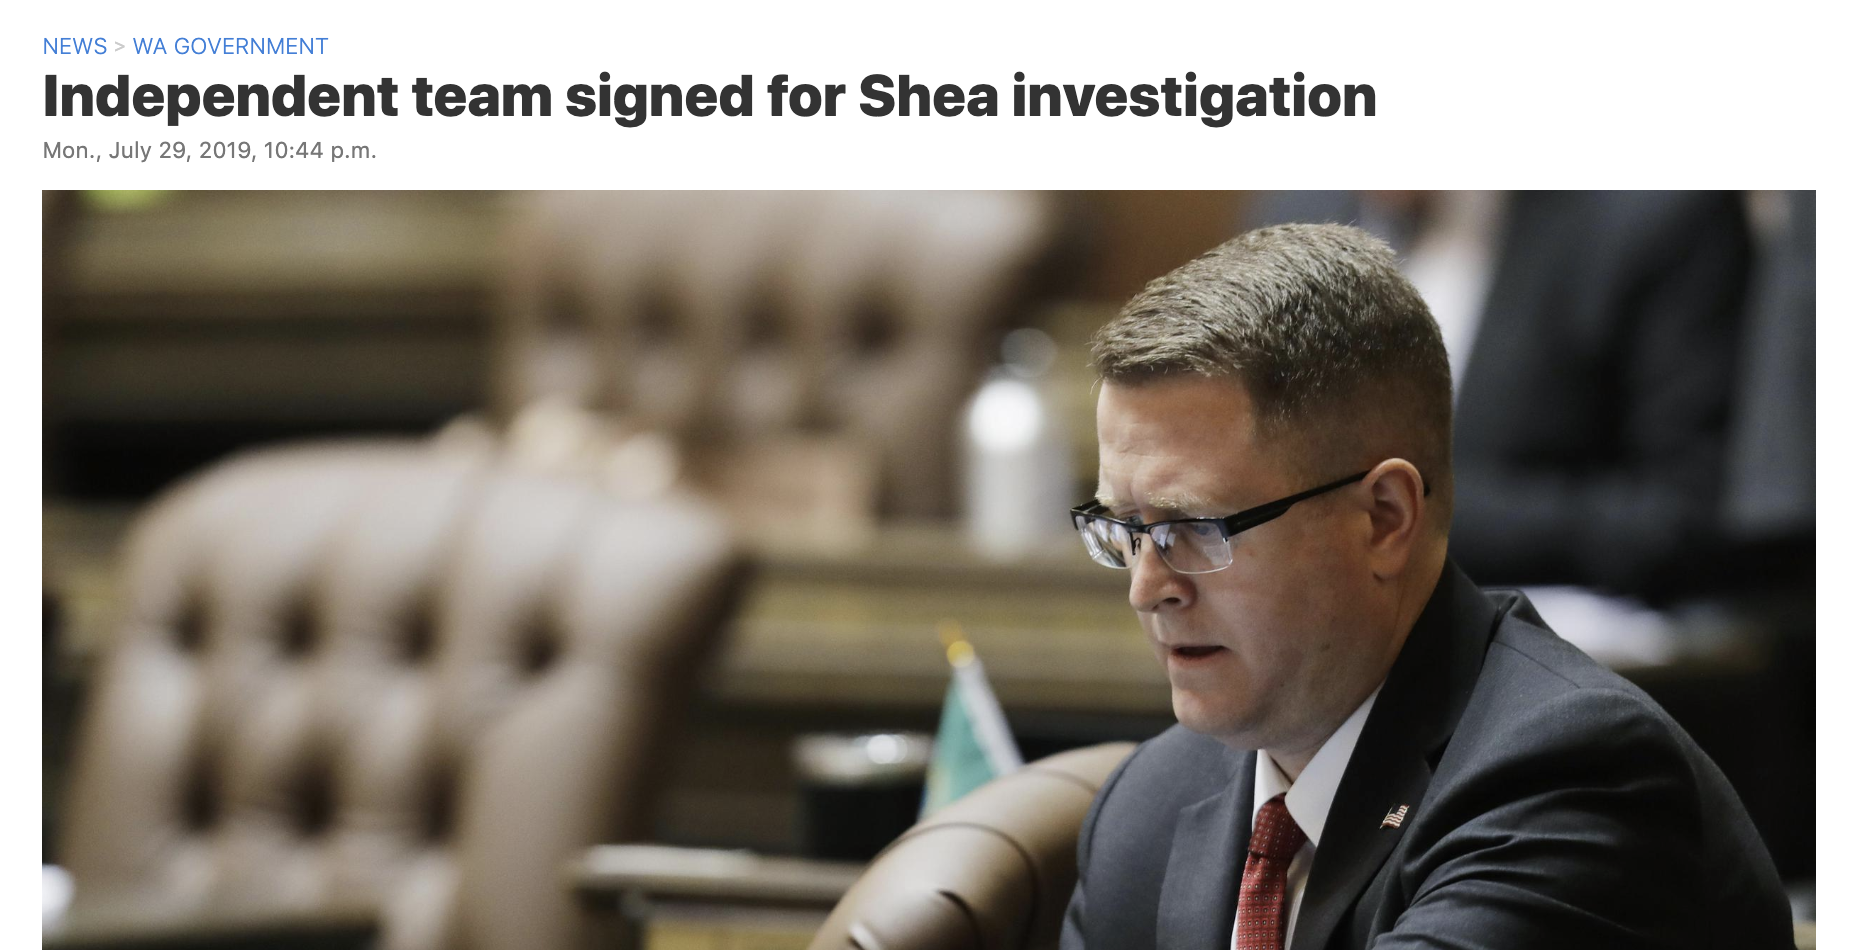 OLYMPIA – The state House of Representatives agreed Monday to pay a team of independent investigators as much as $120,000 to determine whether a Spokane Valley lawmaker has promoted political violence against any person or group.  The House clerk's office announced it signed a contract with Rampart Group LLC, of Silverdale, Washington, to investigate Rep. Matt Shea, who earlier this year was reported to have been part of an online conversation where others advocated violence against political opponents.  A preliminary report is expected by the end of September with a final report by Dec. 1.   READ FULL ARTICLE HERE